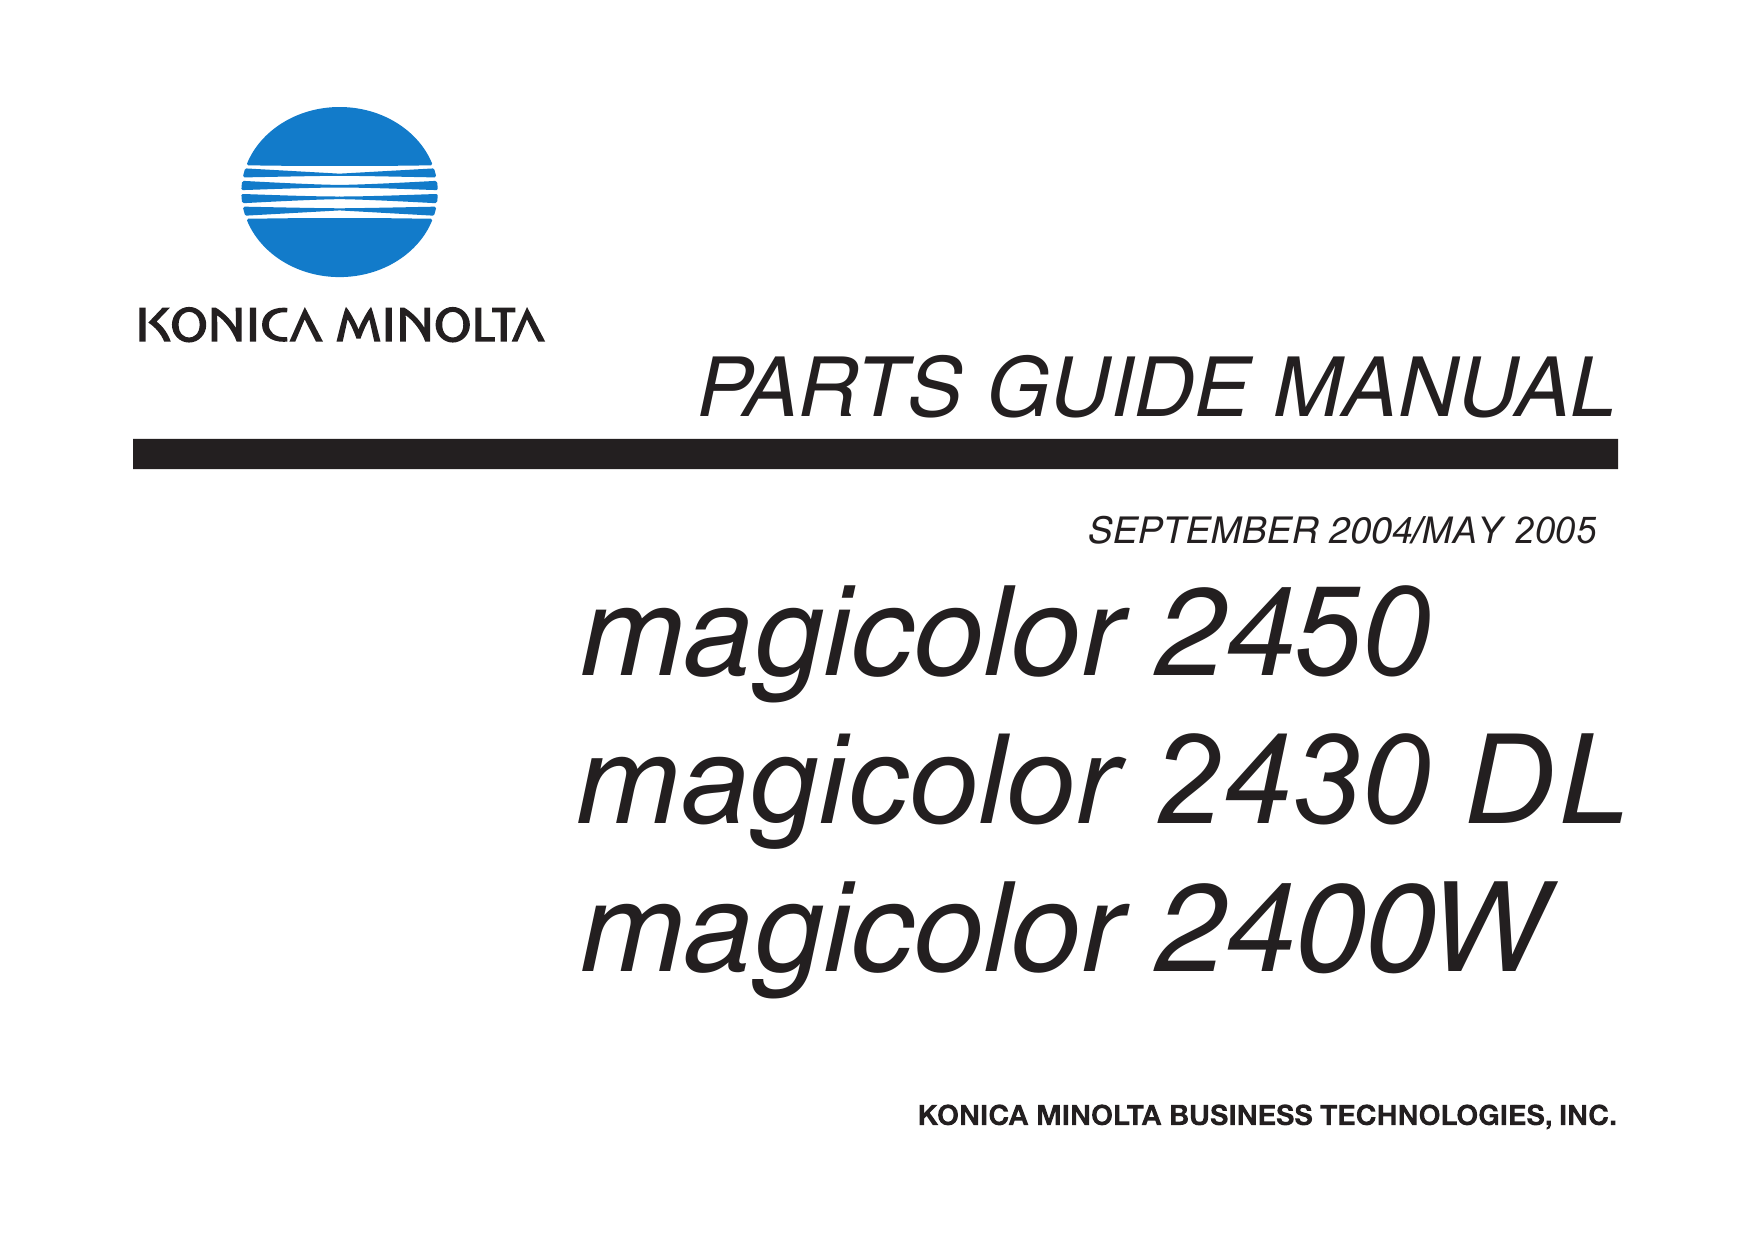 Konica-Minolta magicolor 2400W 2430DL 2450 Parts Manual